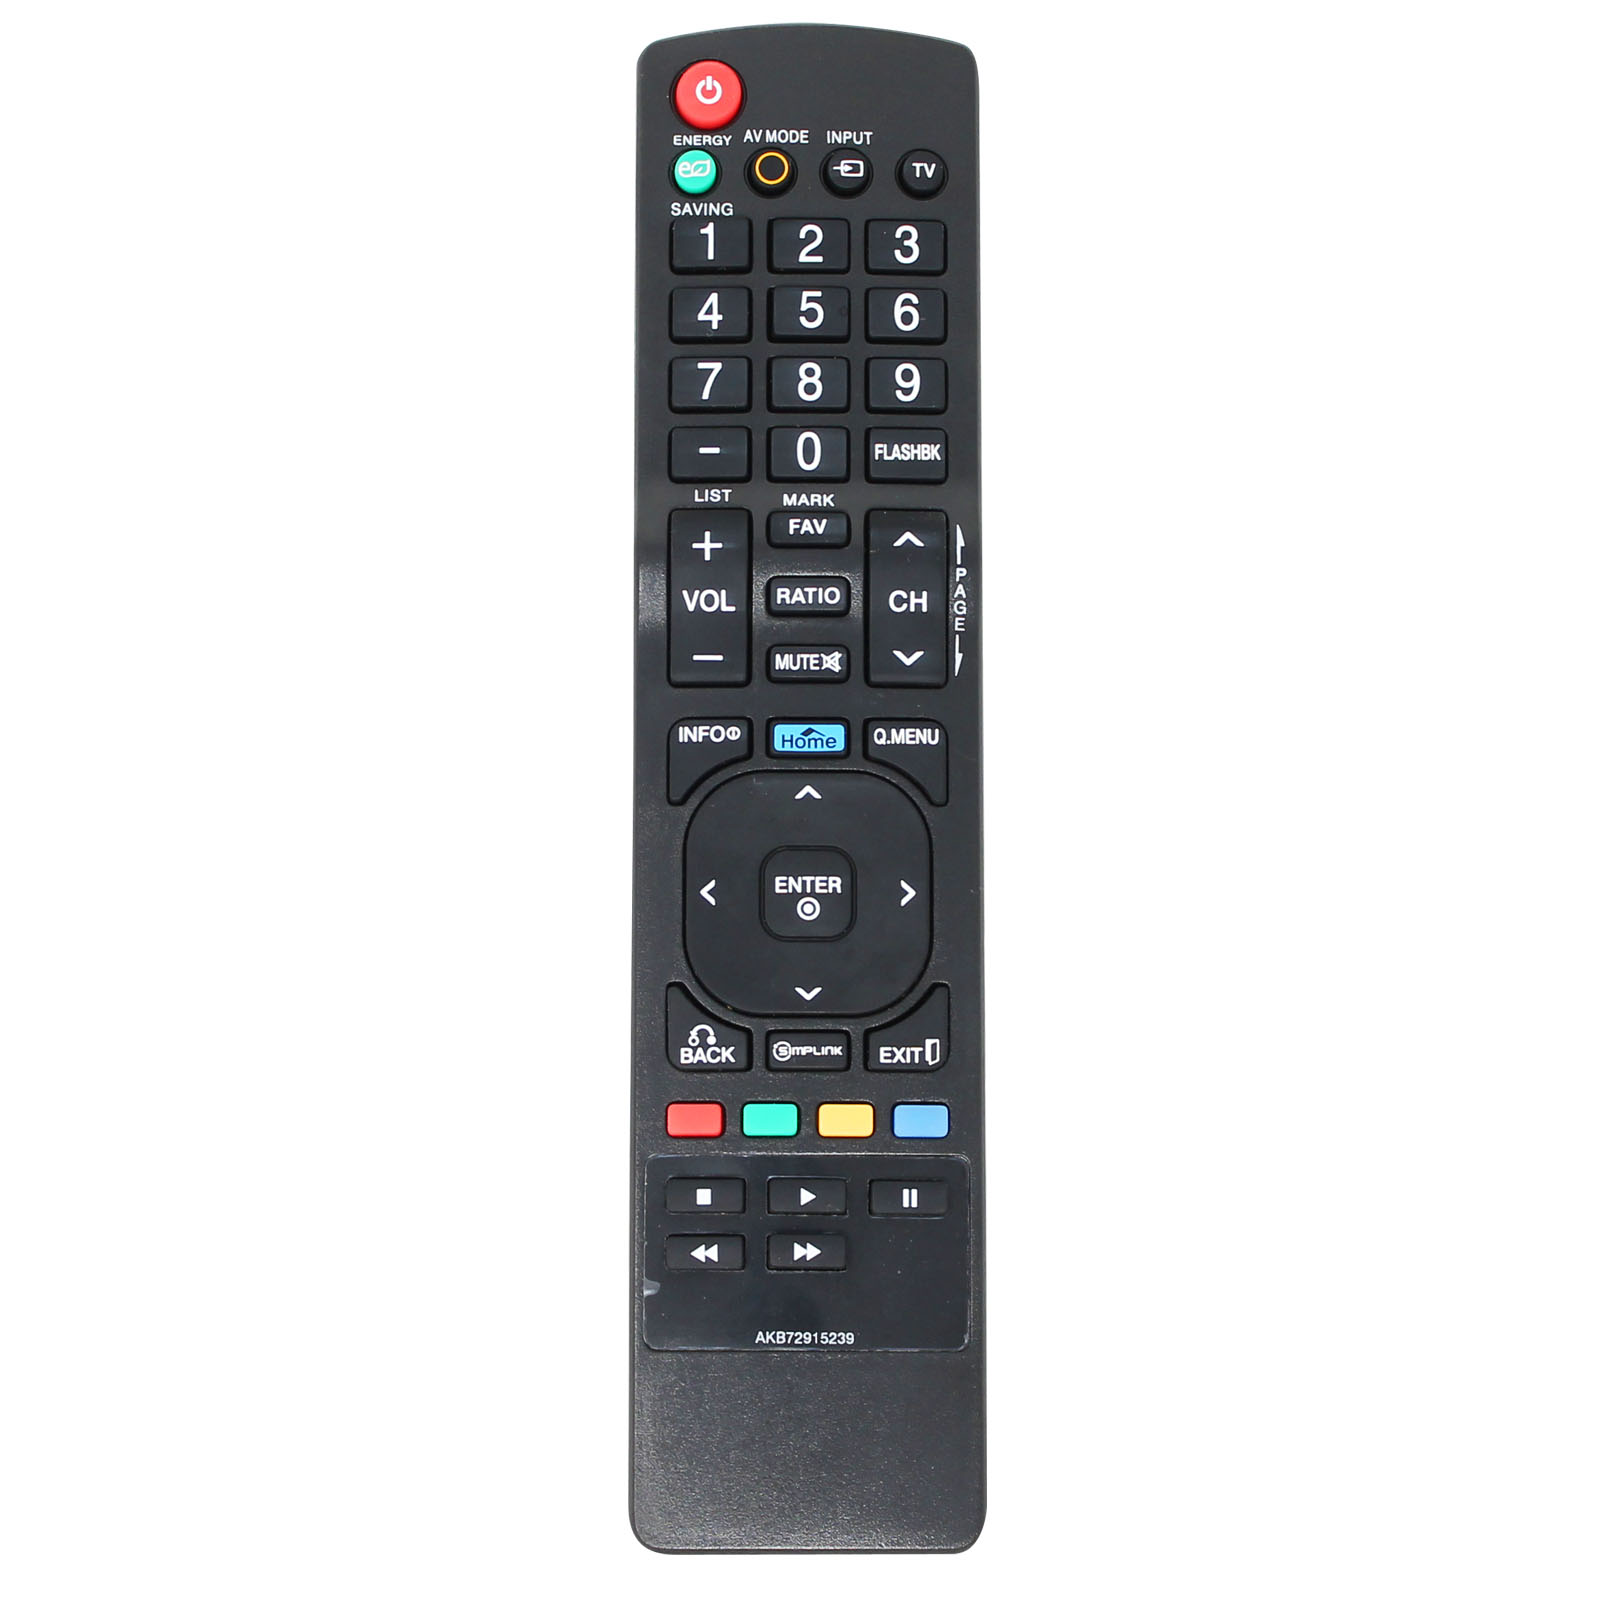 Replacement HDTV Remote Control for 55LB5900, 42LB5600, 32LF500B, 47LB5900, 26LV2500, 42LK450, 55LK520, 32LK450, 47LK520, 32LK330, 32LB5600, 42LK520 - Compatible with LG TV AKB72915239 Remote Control - image 1 of 3